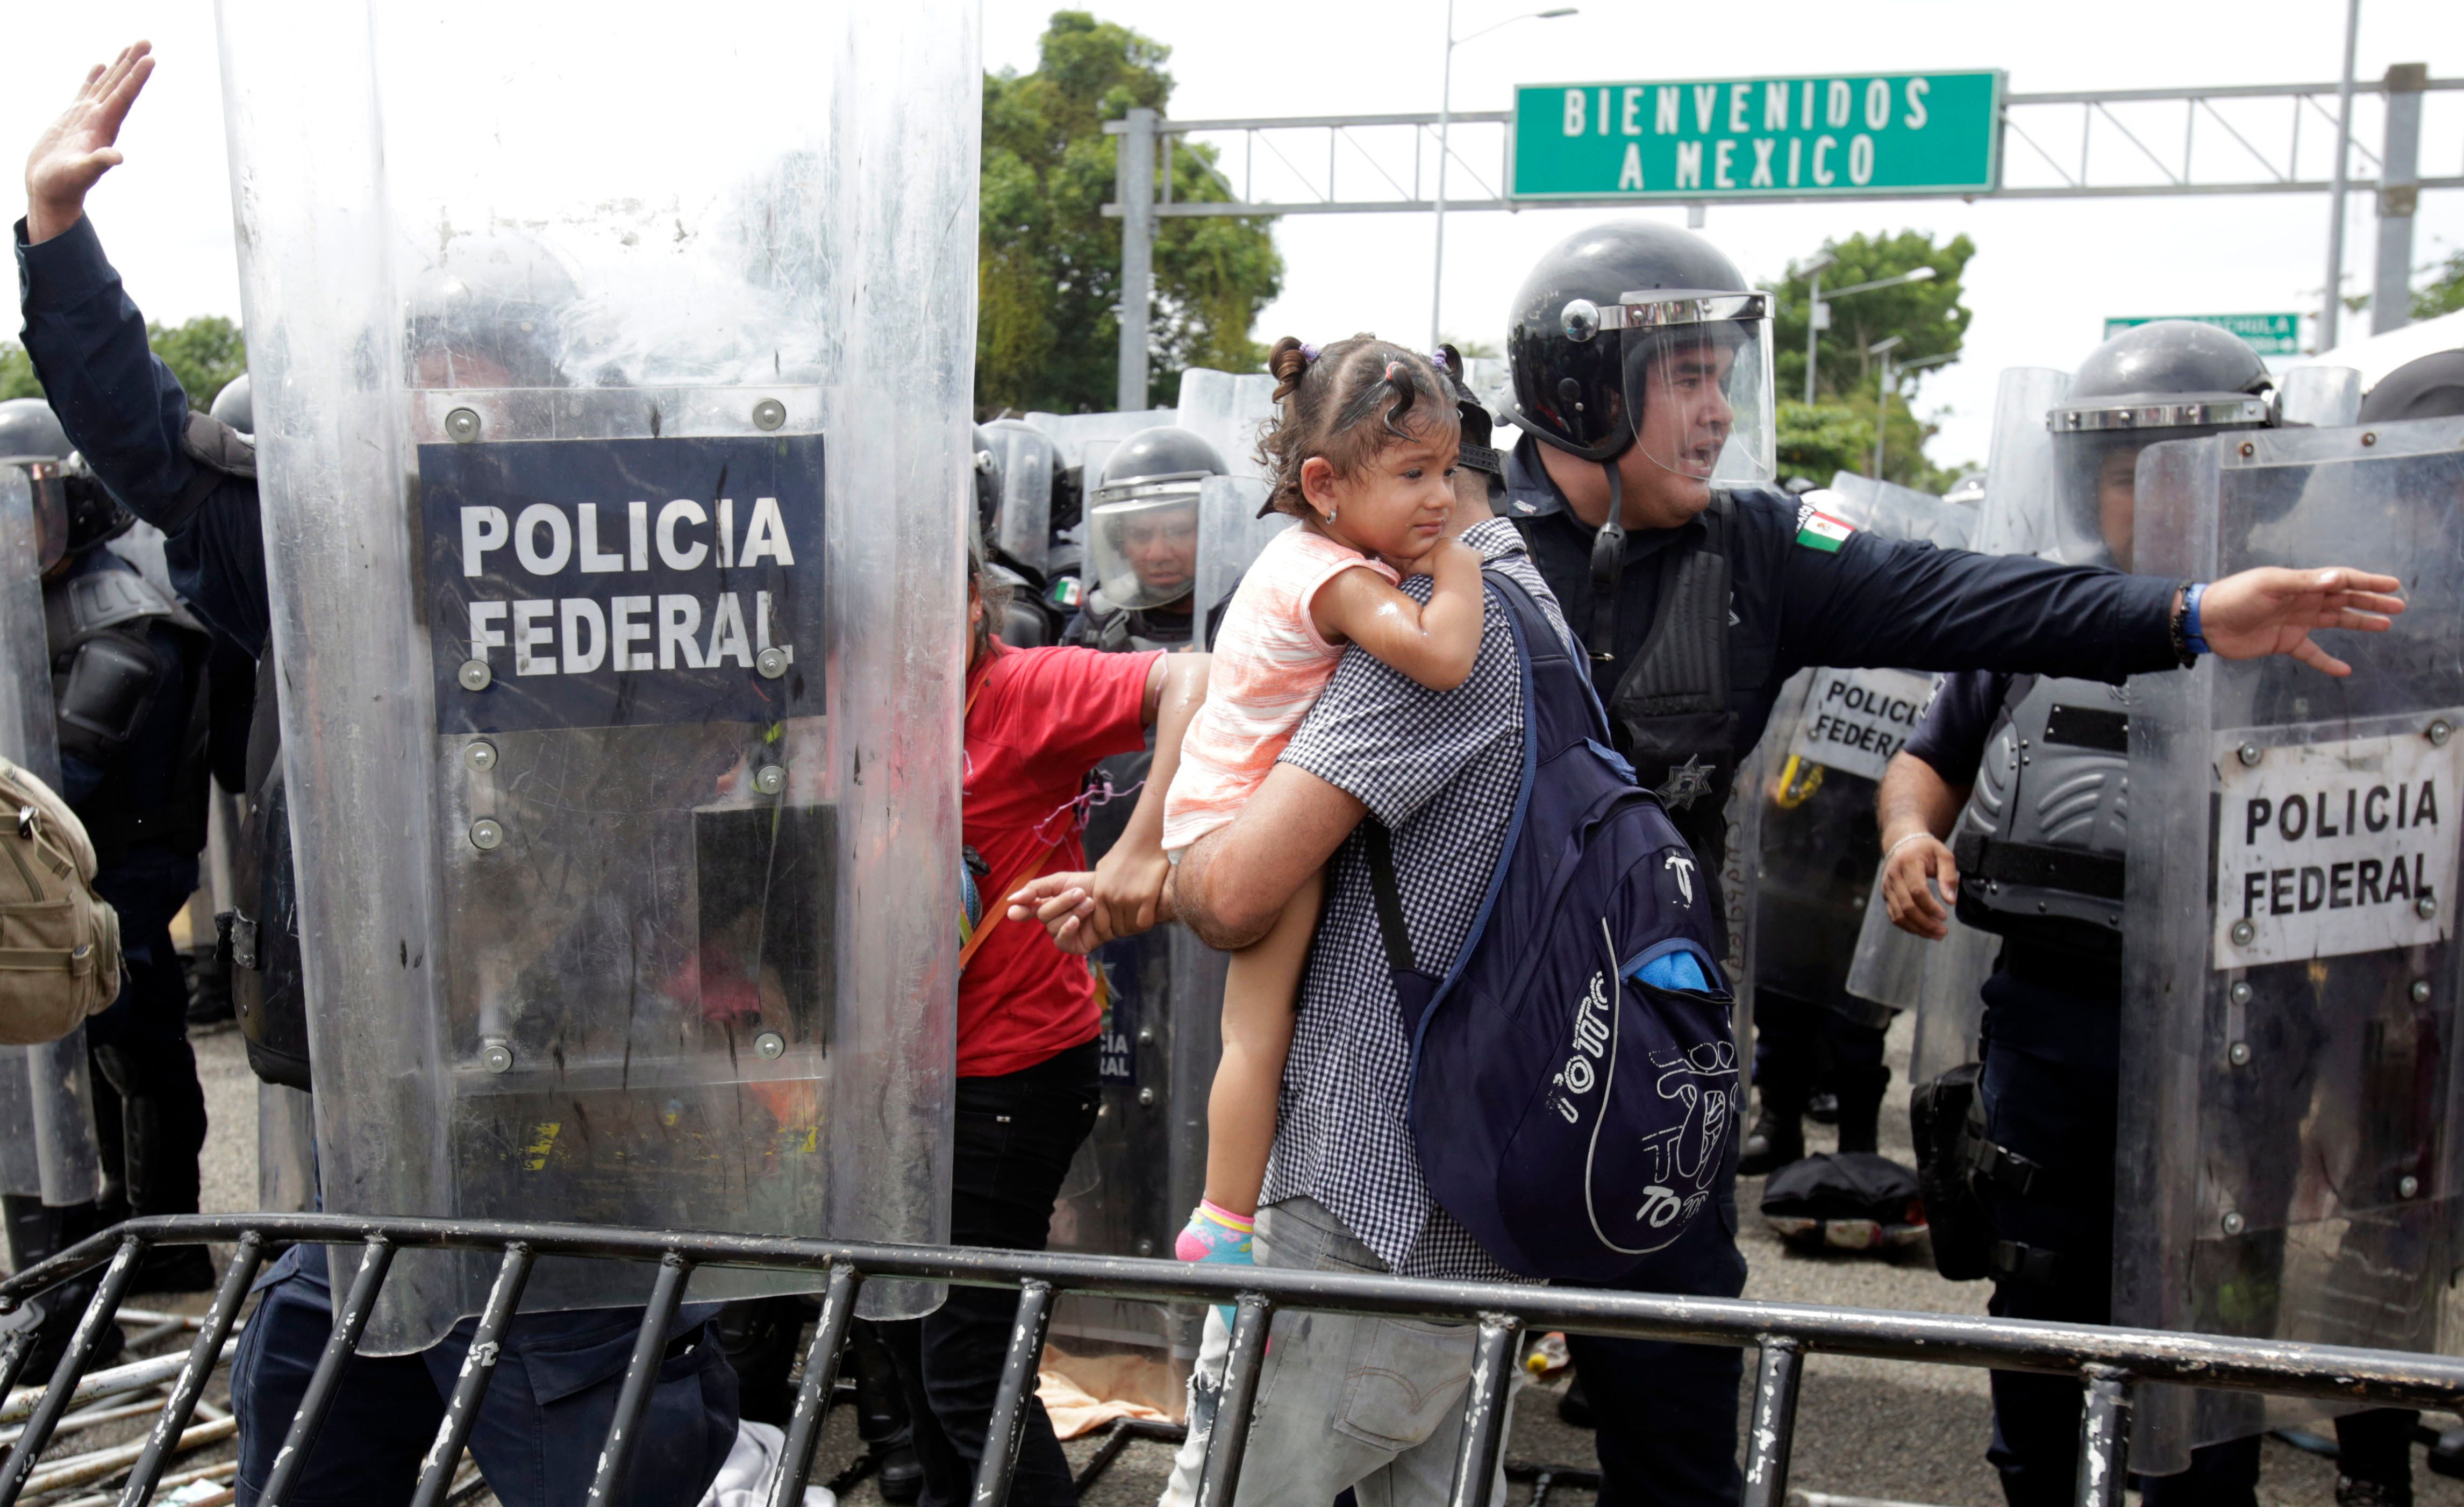 A Honduran migrant family is allowed to pass through to safety by Mexican Federal Police in riot gear, at the border crossing in Ciudad Hidalgo, Mexico, Friday, Oct. 19, 2018. Central Americans traveling in a mass caravan broke through a Guatemalan border fence and streamed by the thousands toward Mexican territory, defying Mexican authorities' entreaties for an orderly migration and U.S. President Donald Trump's threats of retaliation. (AP Photo/Moises Castillo)